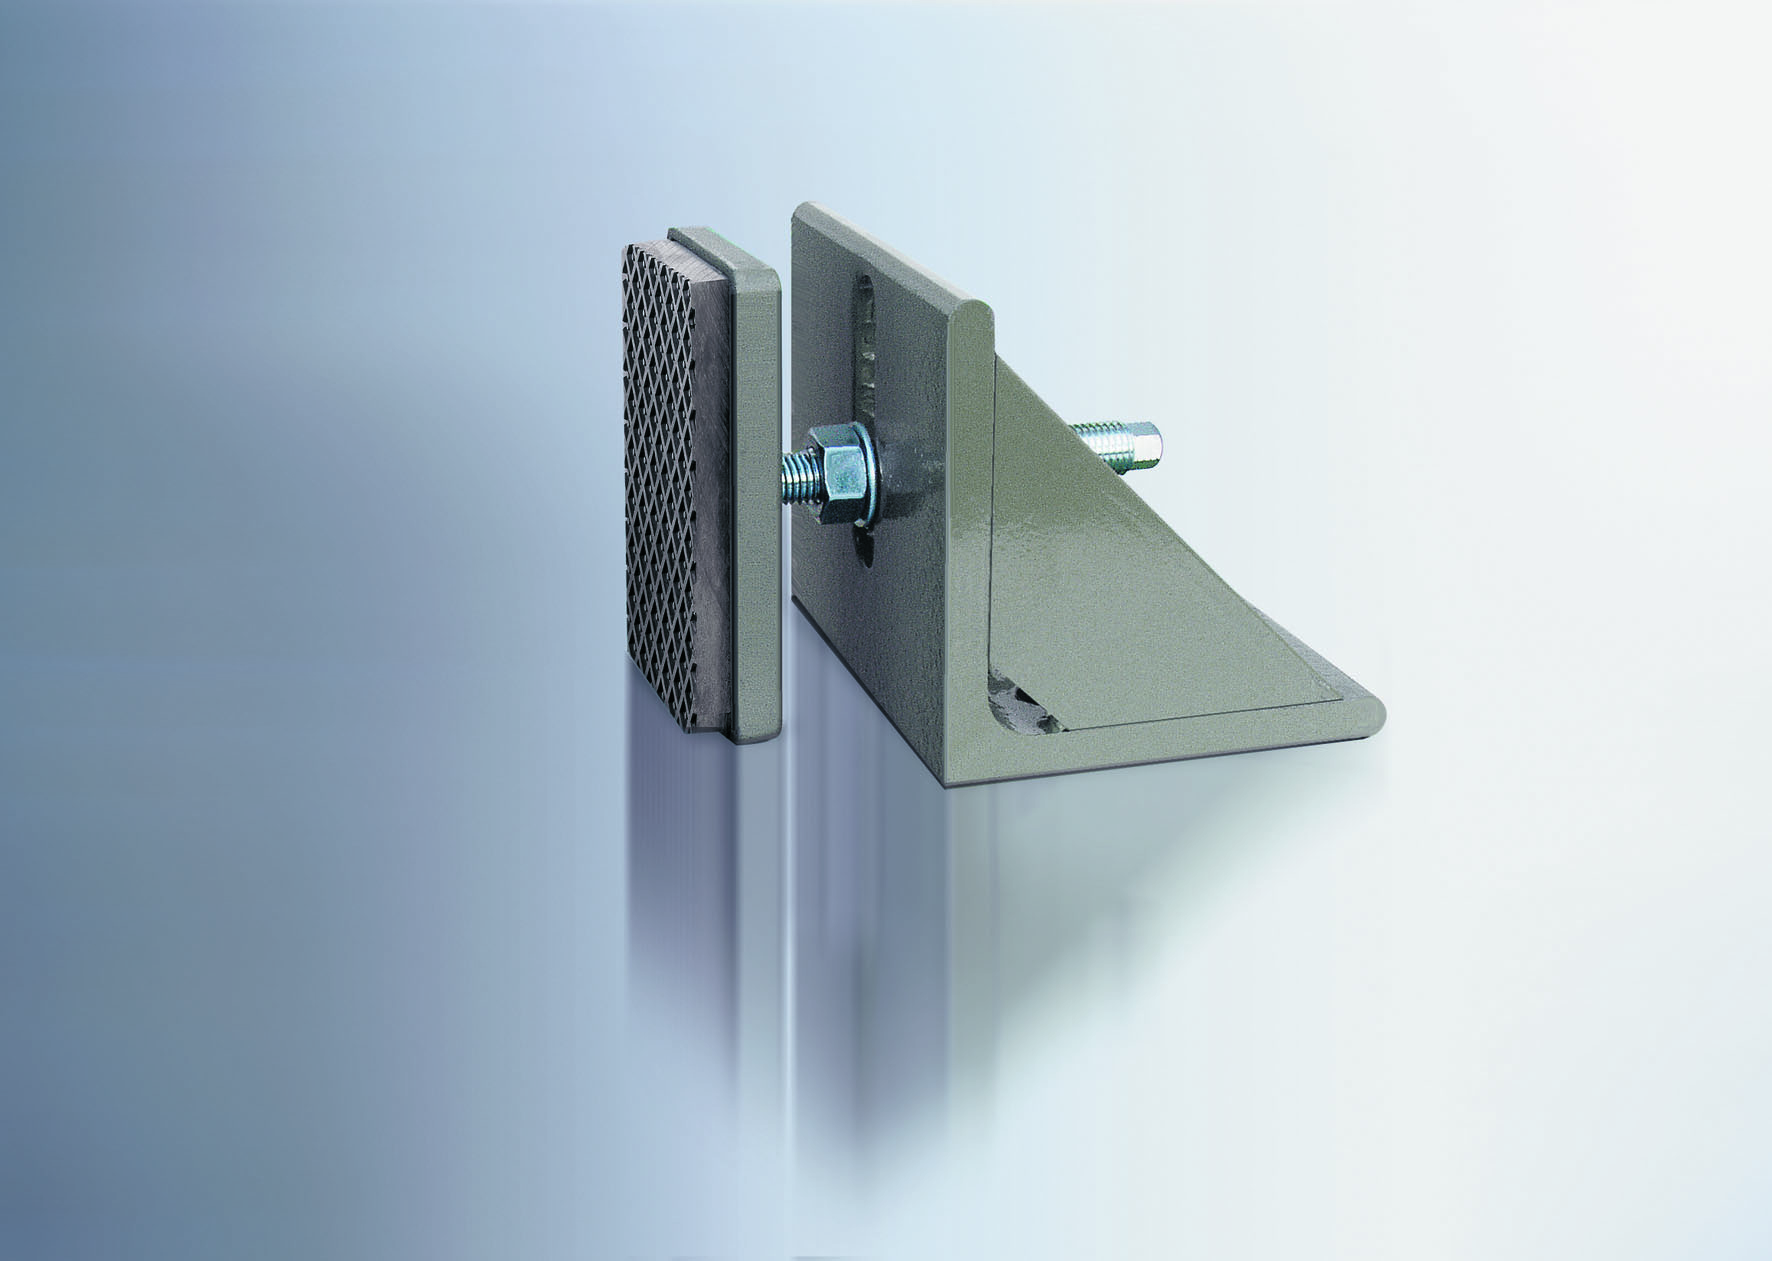 Horizontal Elements 90 Degree Angle Plate With